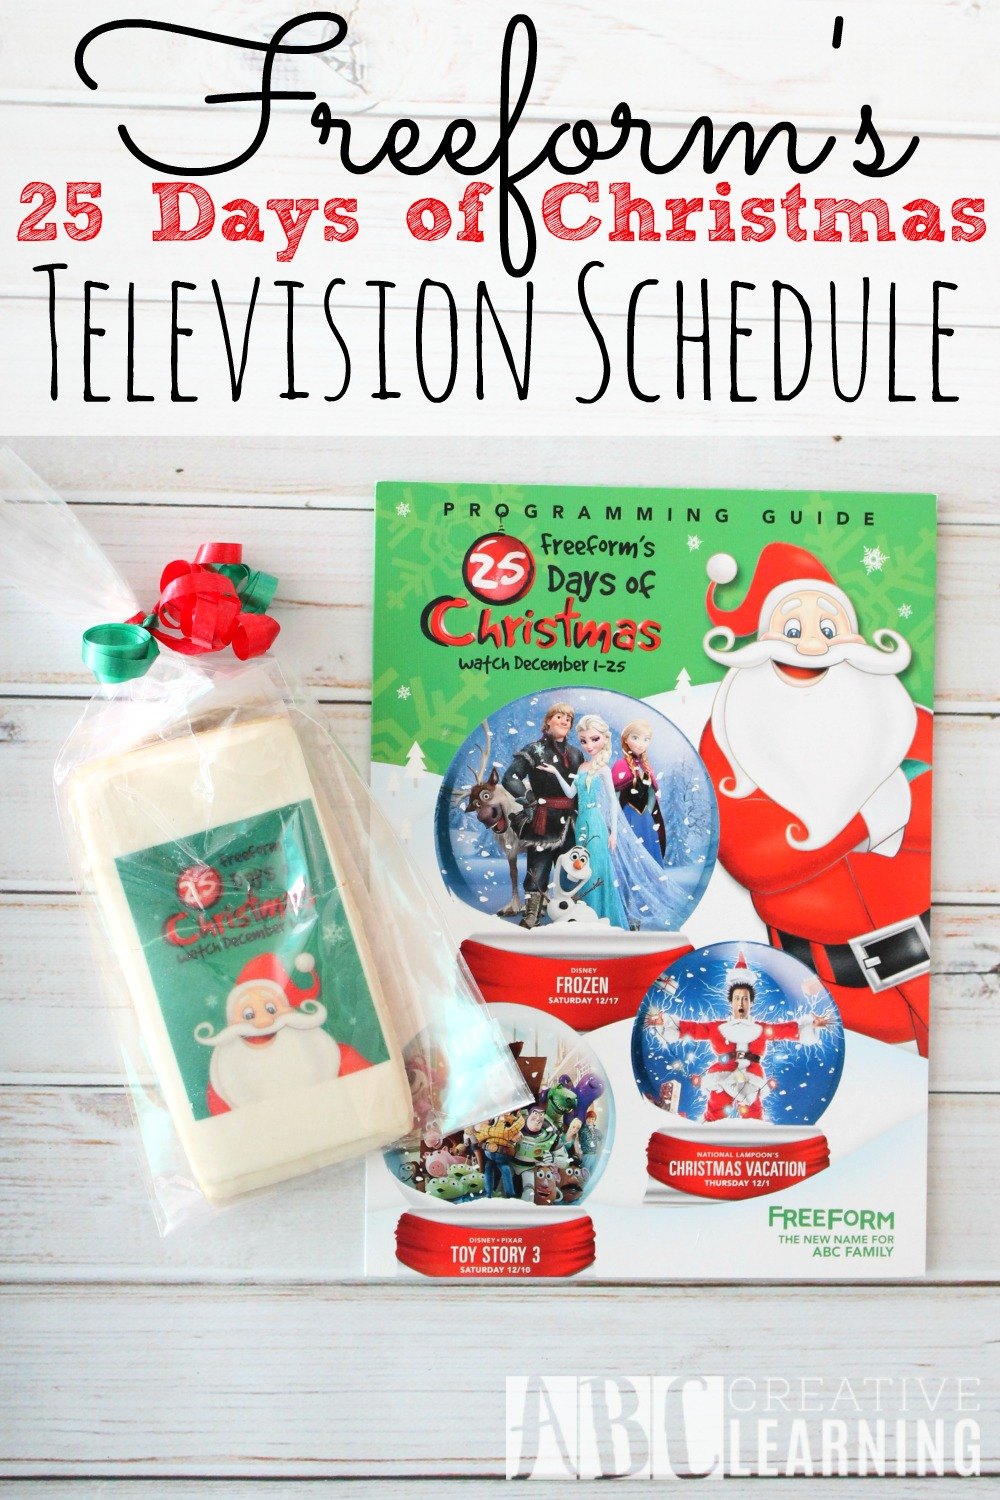 freeforms 25 days of christmas schedule 25daysofchristmas